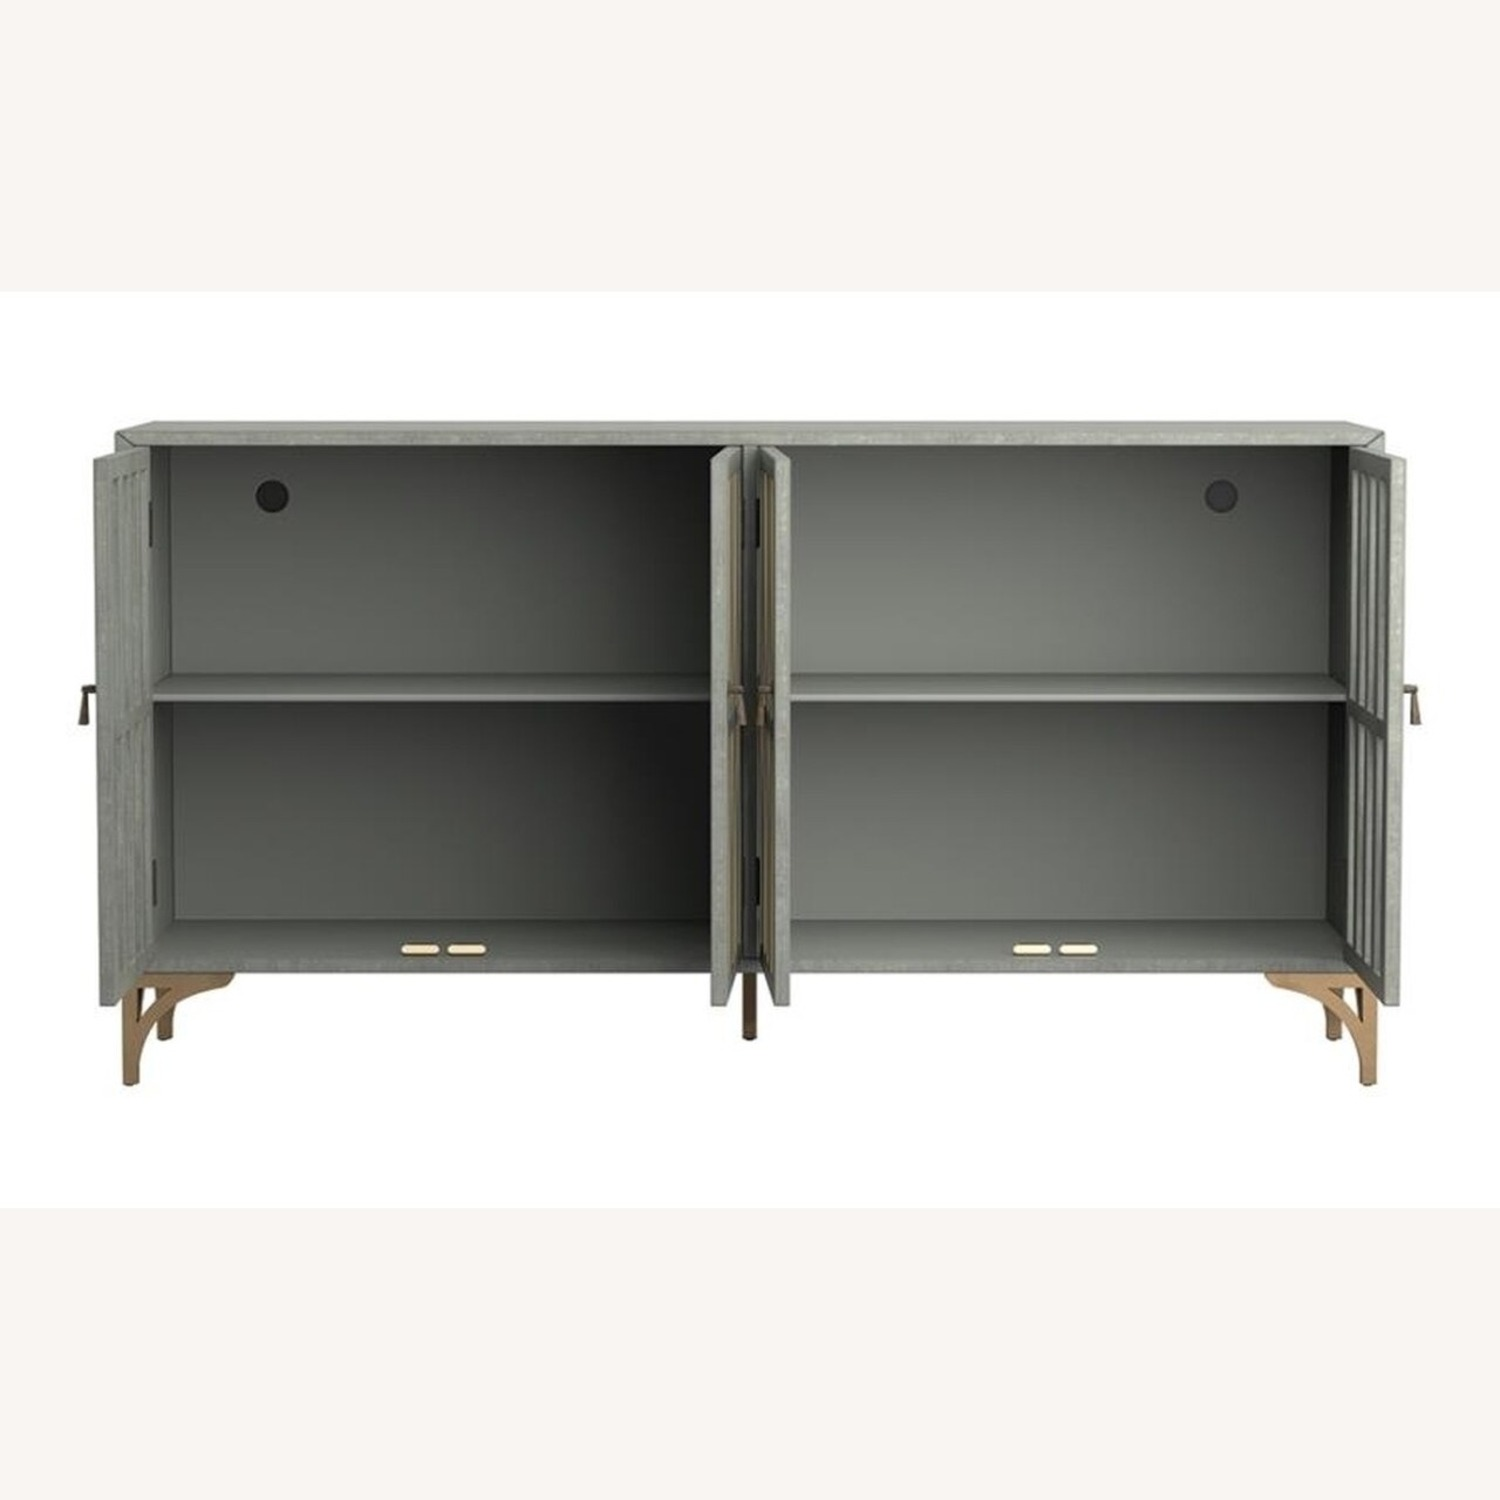 Contemporary Accent Cabinet In Grey Green Finish - image-2